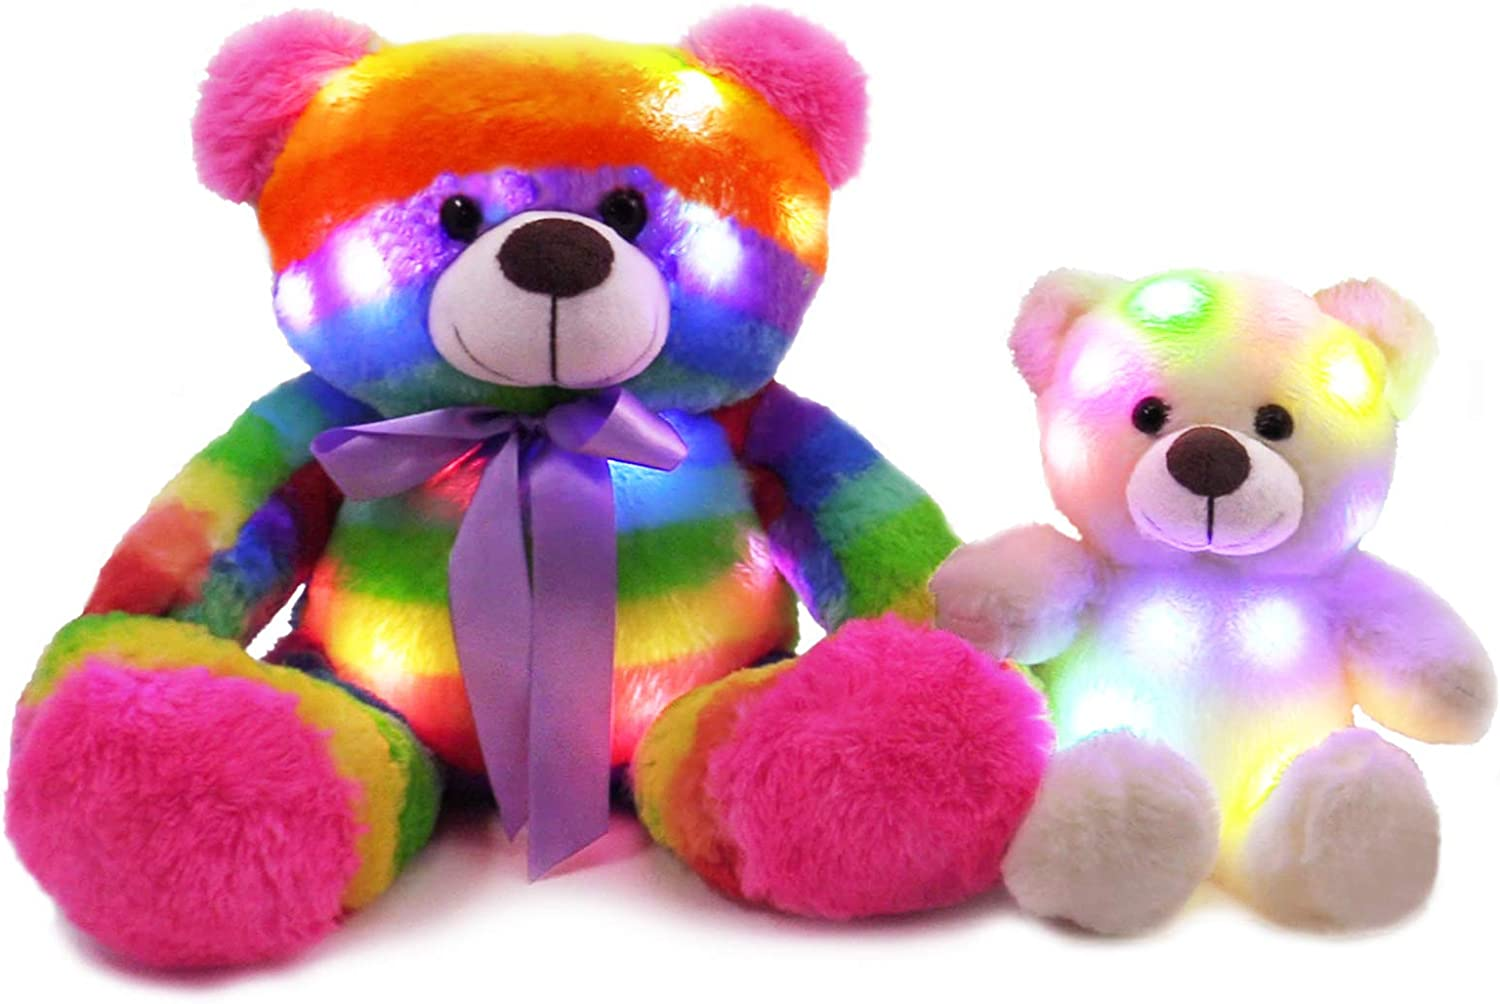 The Noodley Light Up Rainbow Teddy Bear Mom & Baby Set Stuffed Animal Plush Sleep Toy for Toddlers, Kids, Boys & Girls, Valentines, Easter, Rainbow 16 and 11 inch (2 Bears)